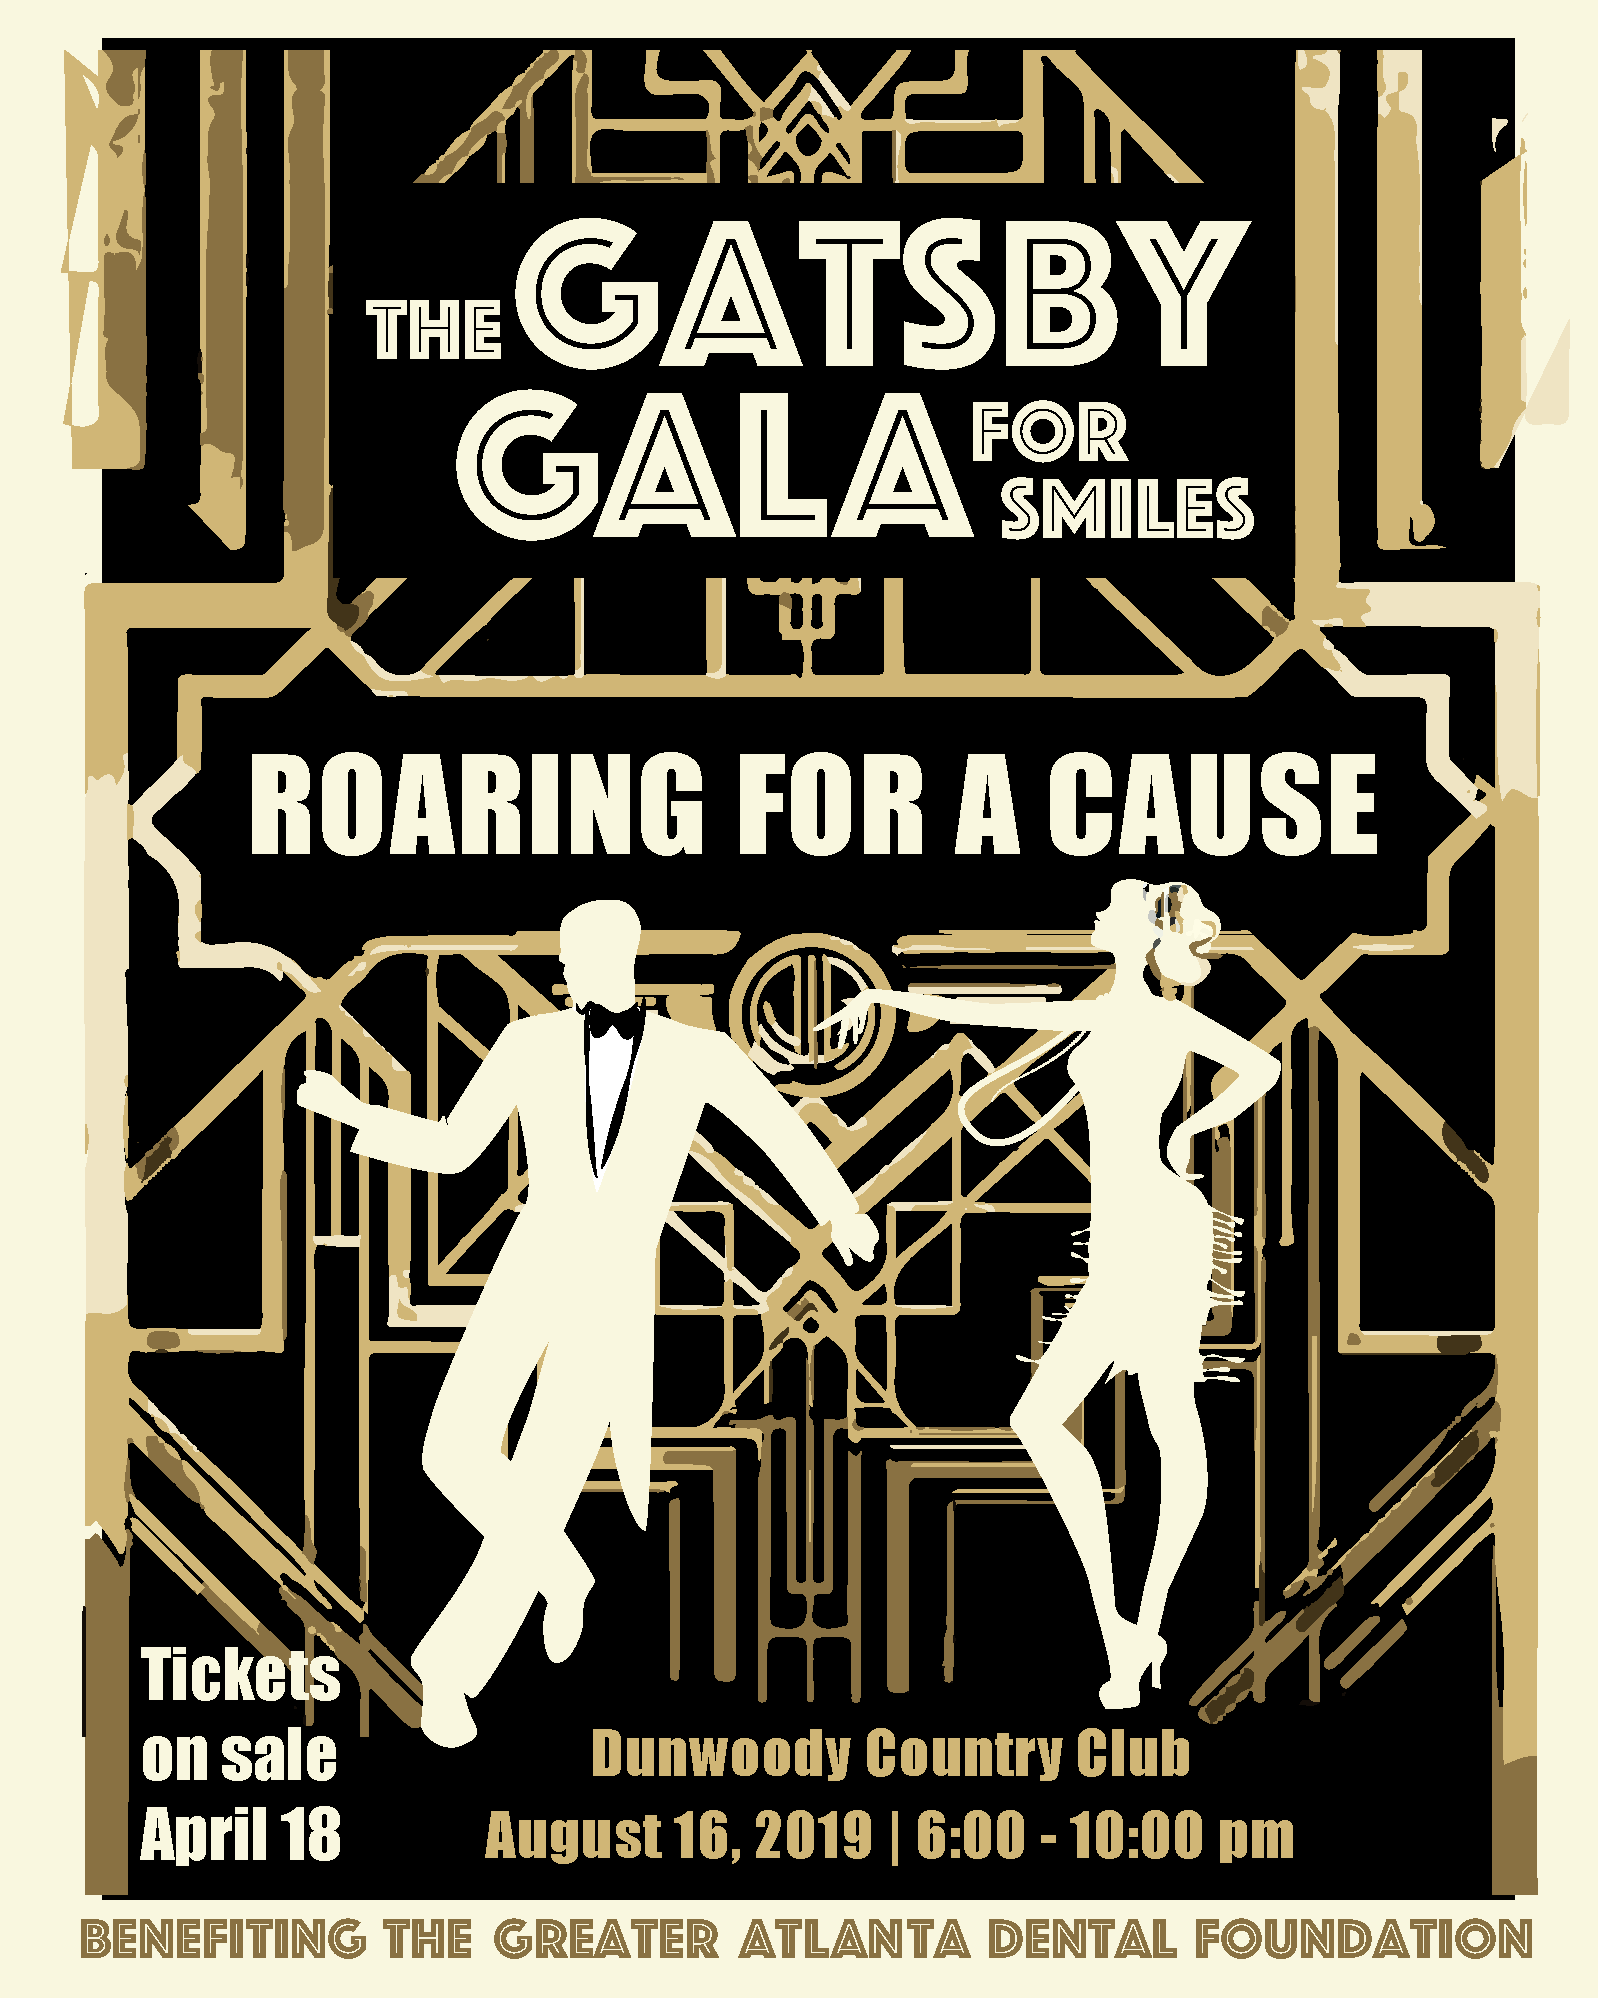 Gatsby Gala- Tickets on sale April 18